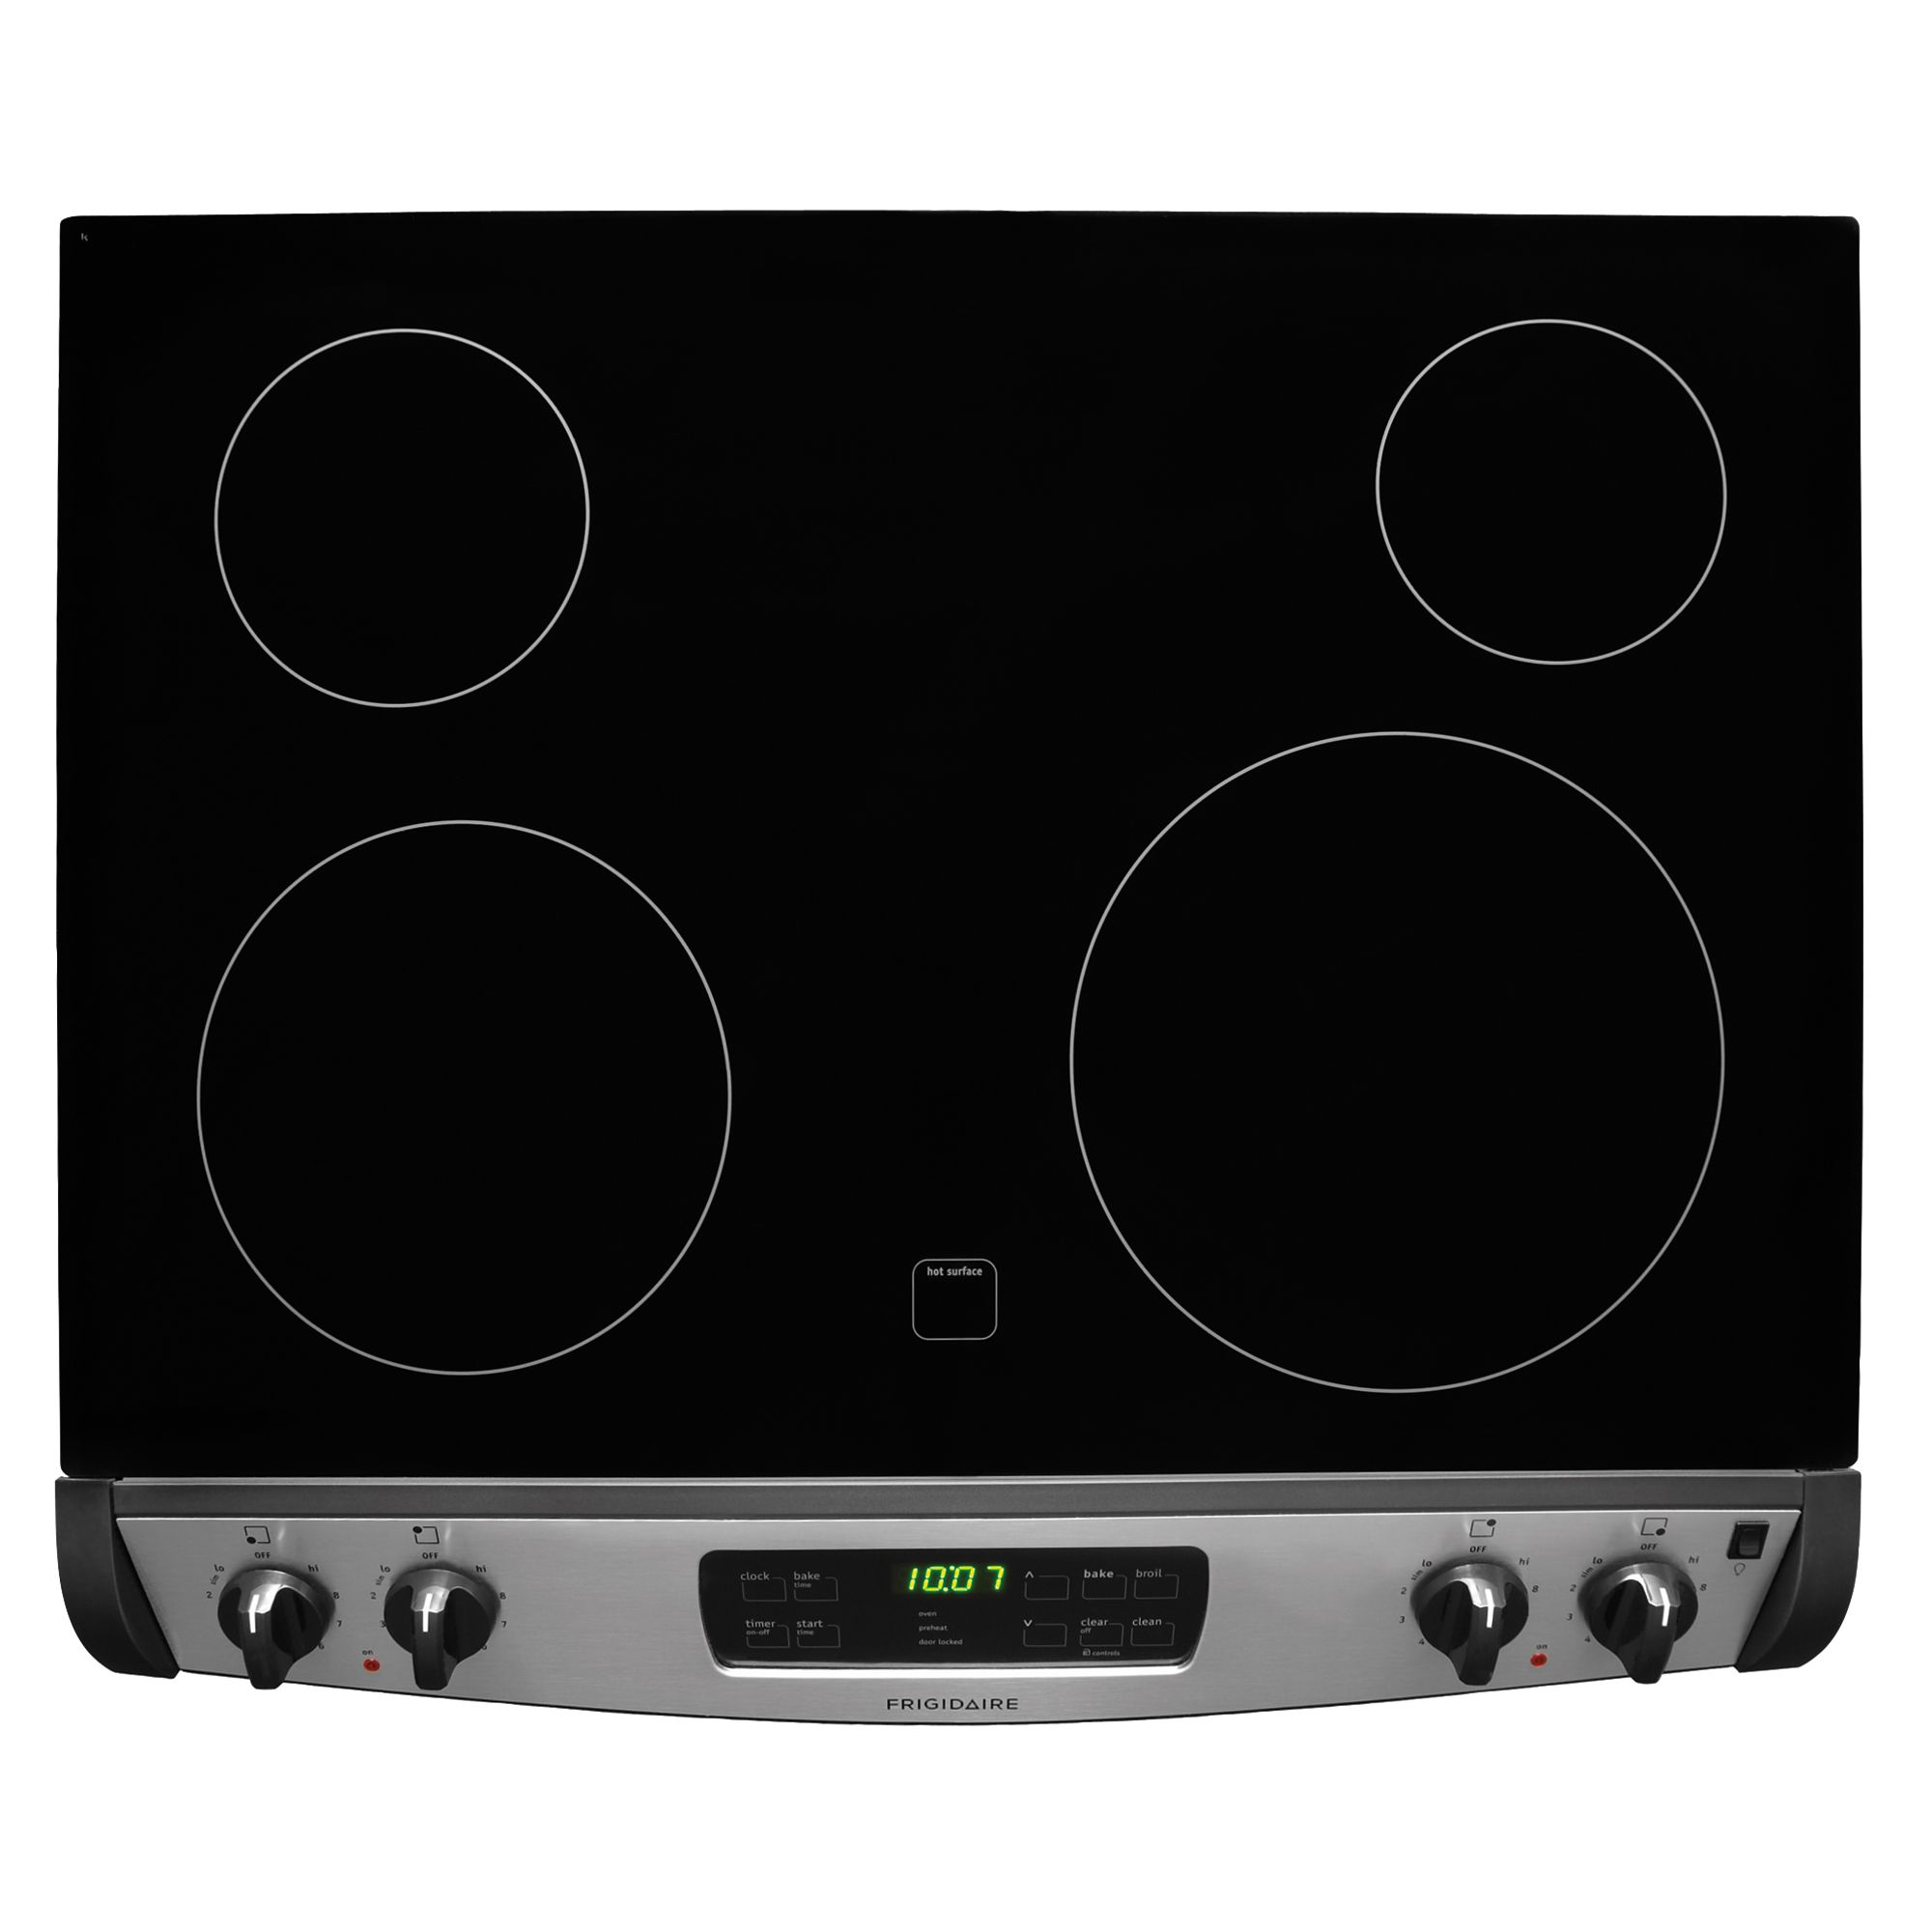 "Frigidaire 30"" Self-Clean Drop-In Electric Range - Stainless Steel"